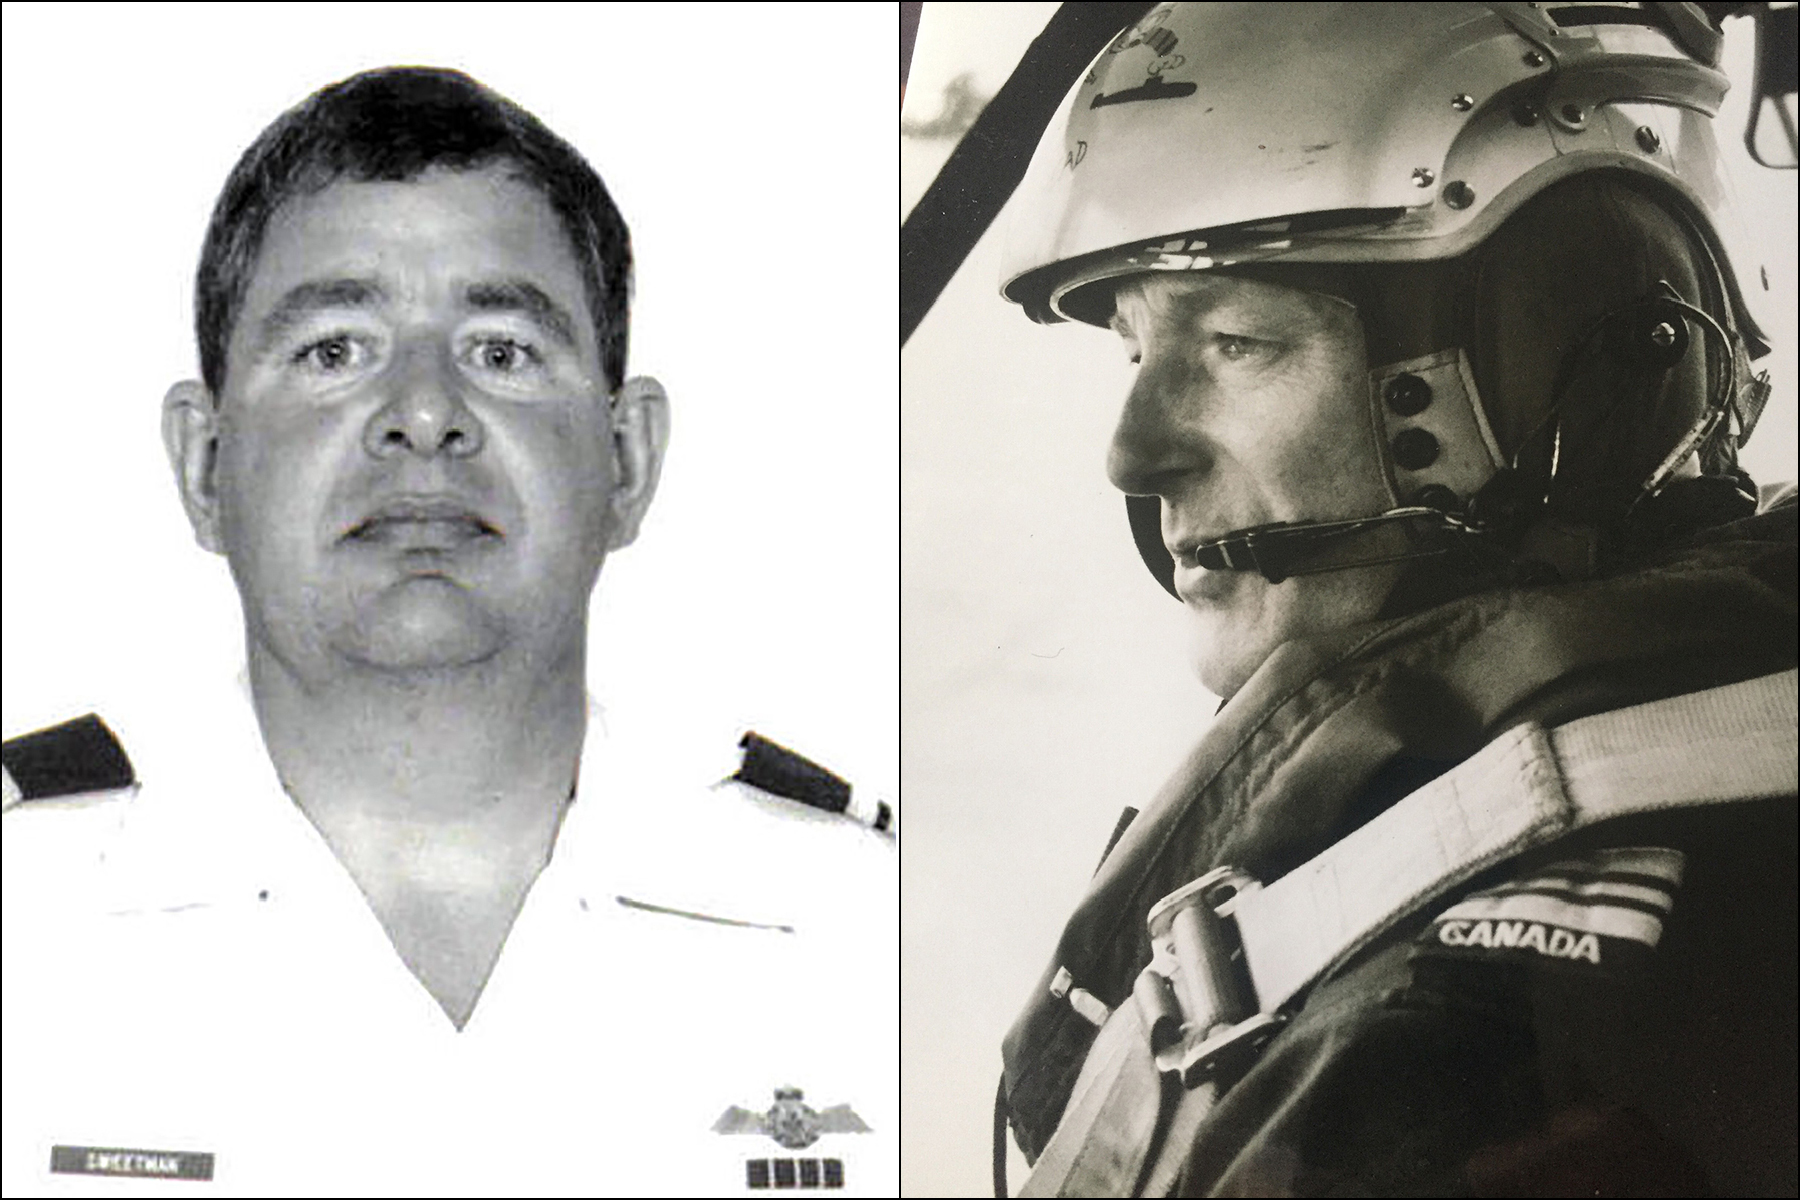 On the left, a black and white head-and-shoulders photograph of a man wearing a white uniform with dark epaulets; on the right, a sepia-toned profile photo of a man wearing a dark flight suit and a white helmet with a communications package.